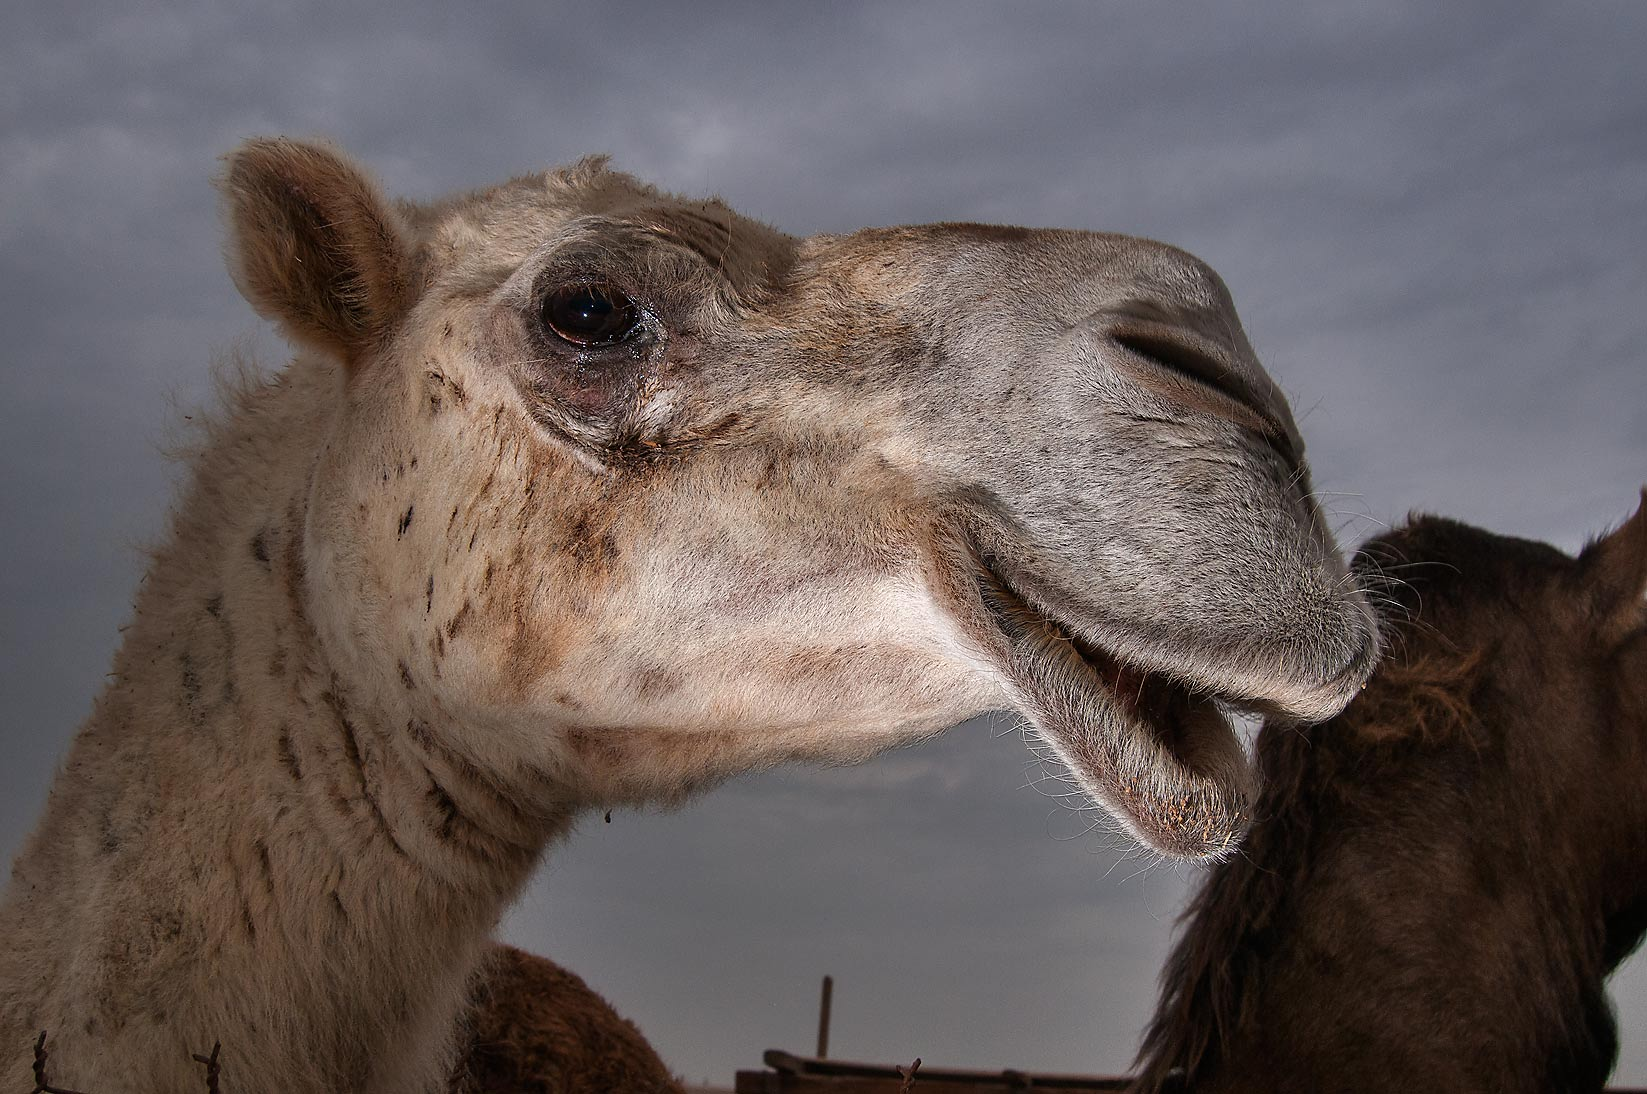 Camel with open mouth in livestock markets, Abu Hamour area. Doha, Qatar